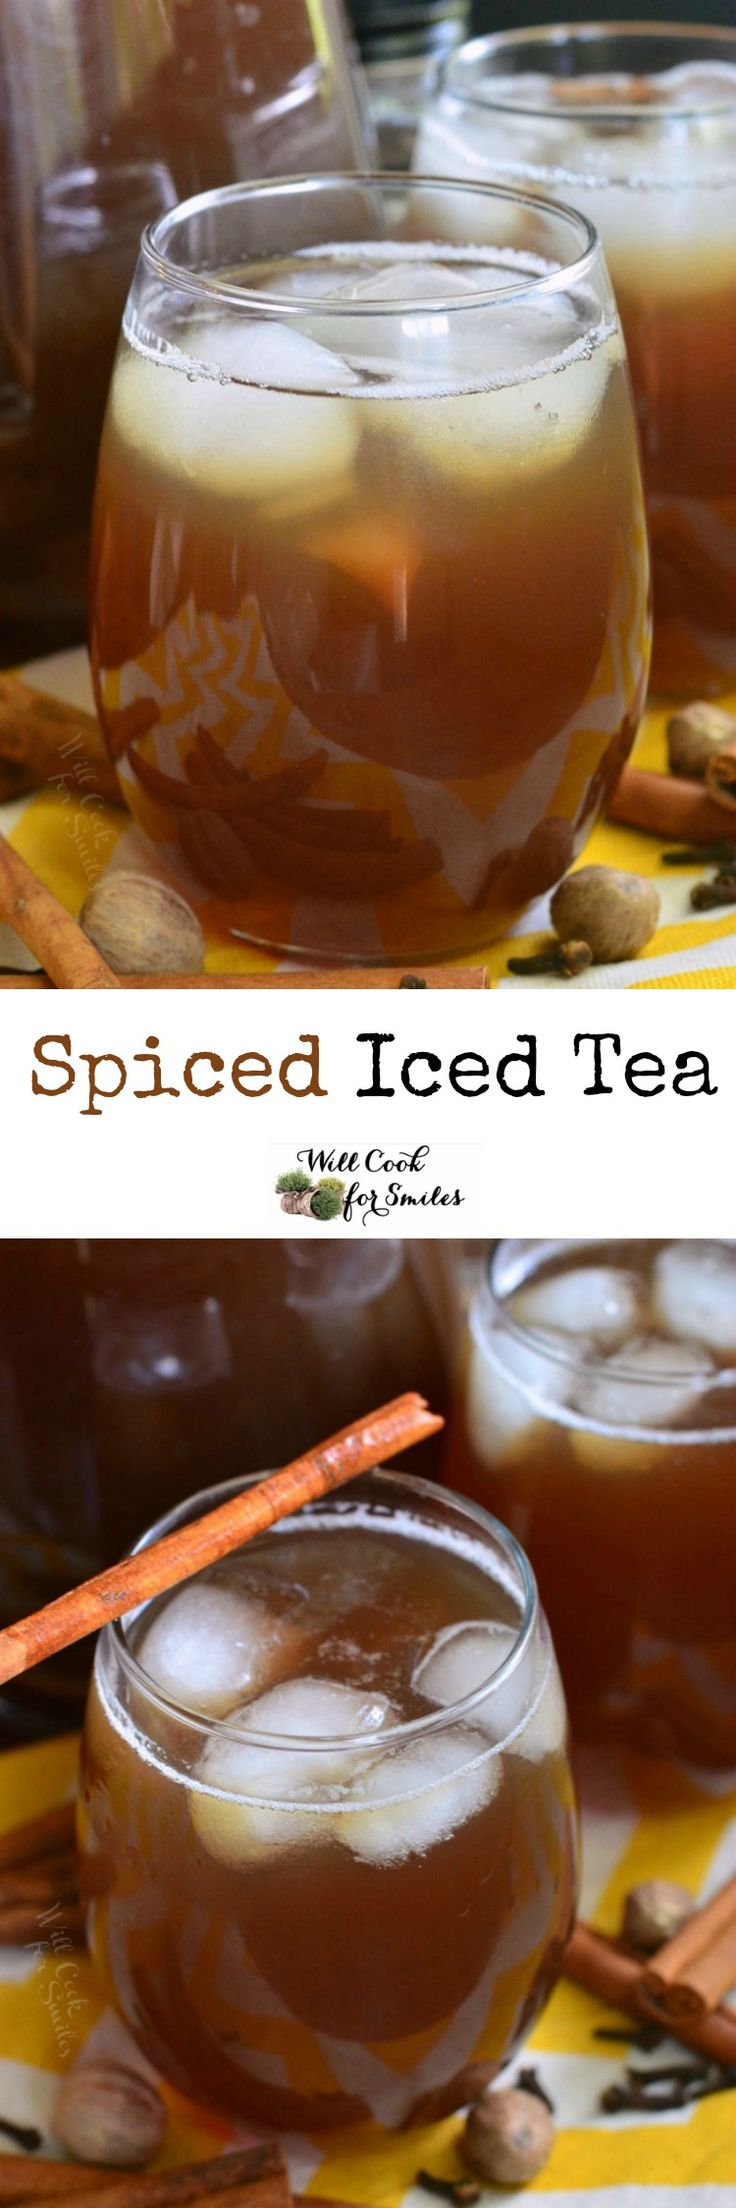 Spiced Iced Tea. Delicious, aromatic, iced tea made specially to compliment the fall season.